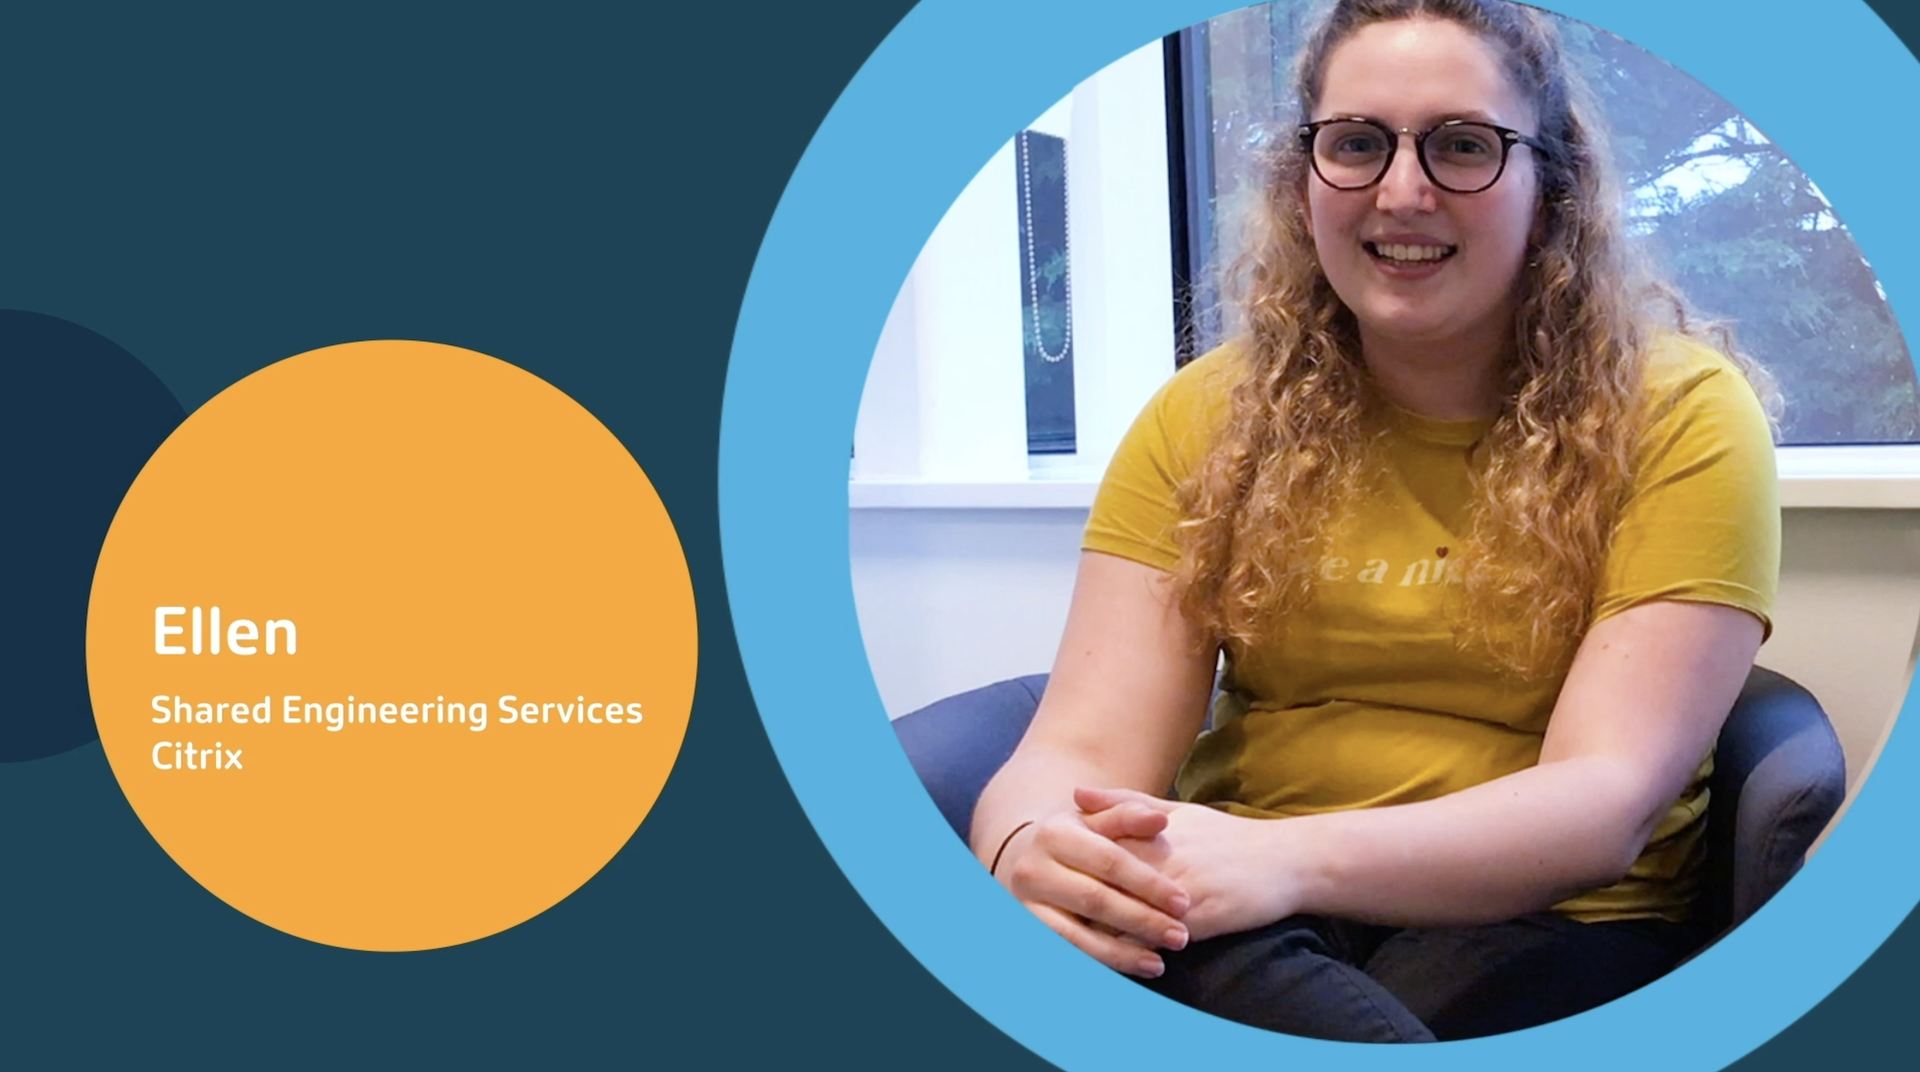 Ellen from Shared Engineering Services